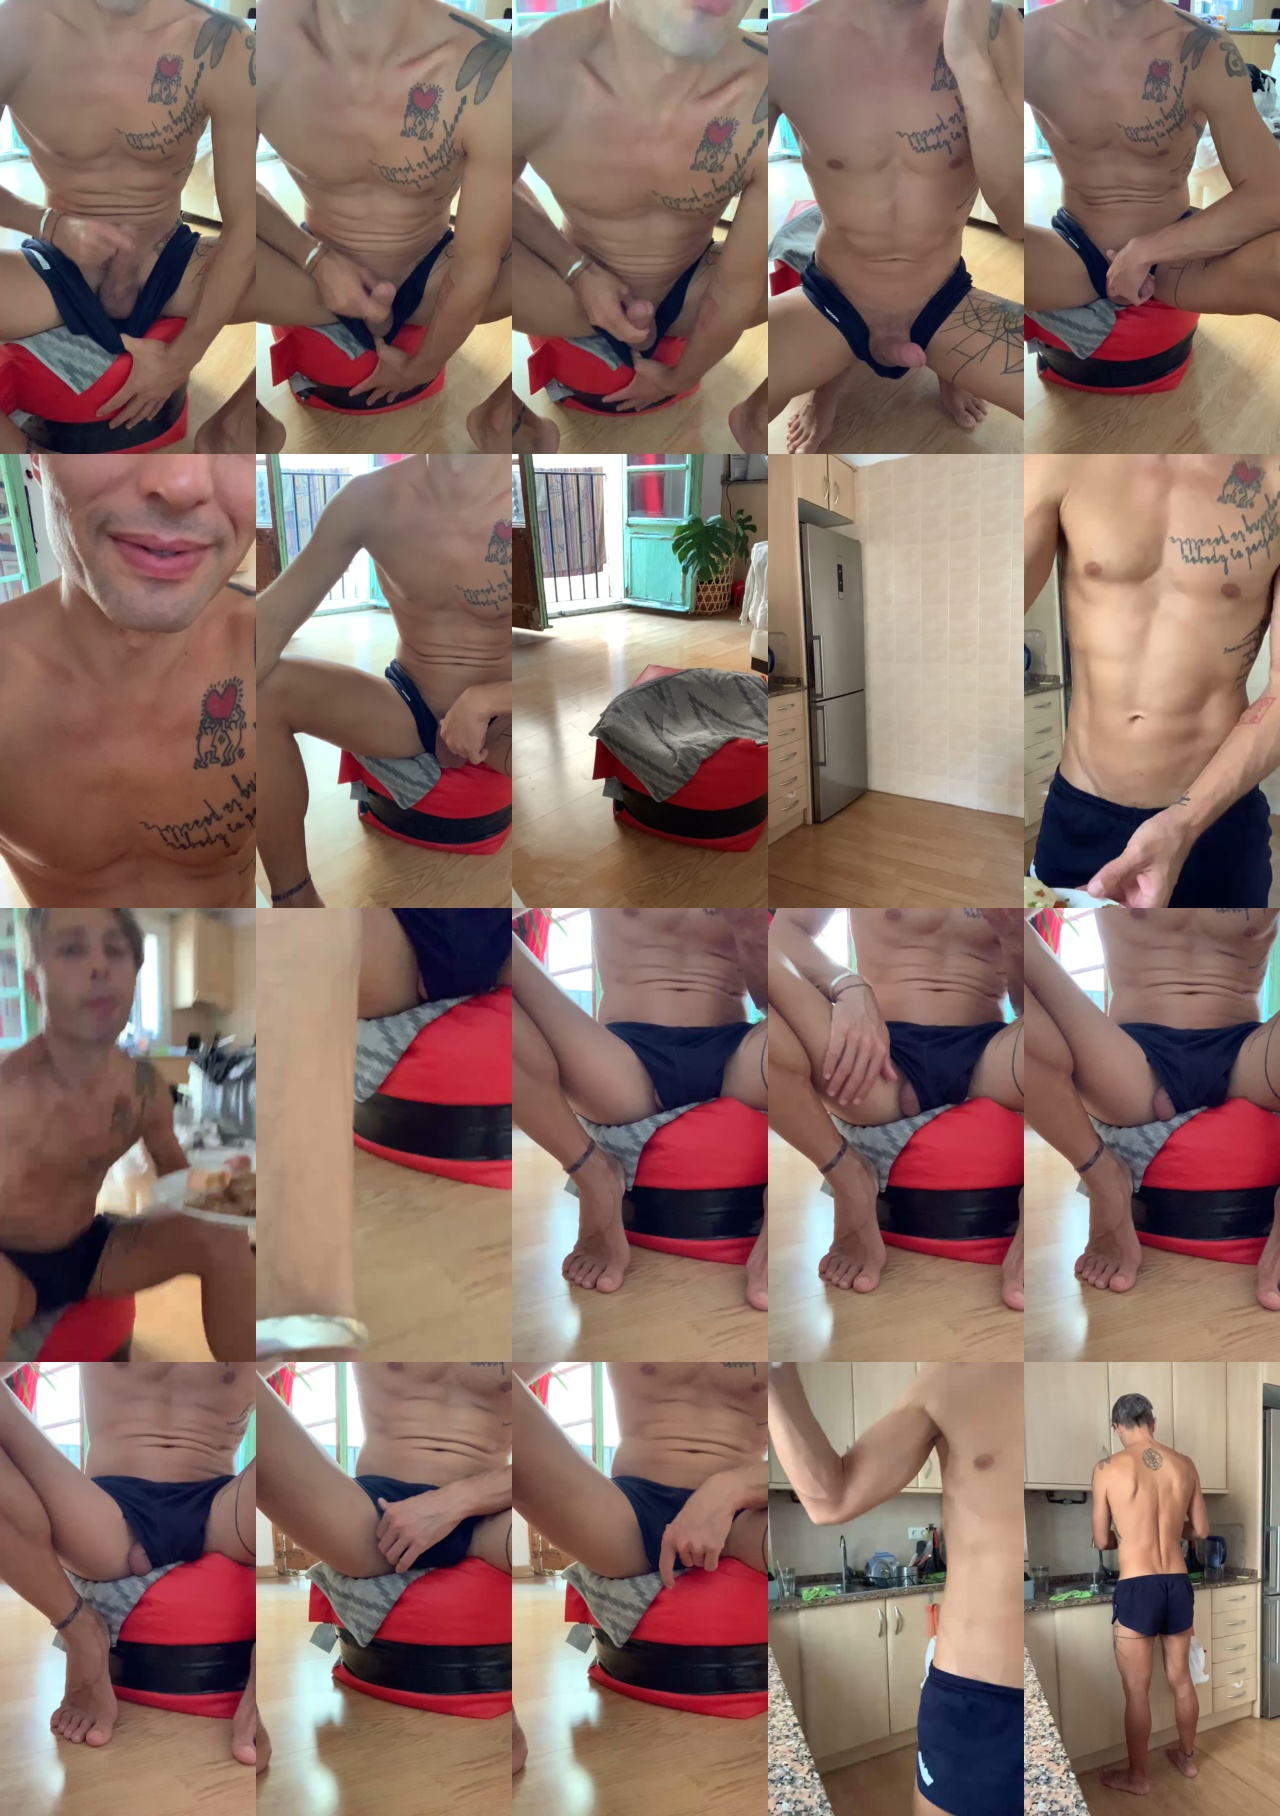 r0me0_st0ry Cam4 30-09-2020 Recorded Video Cam